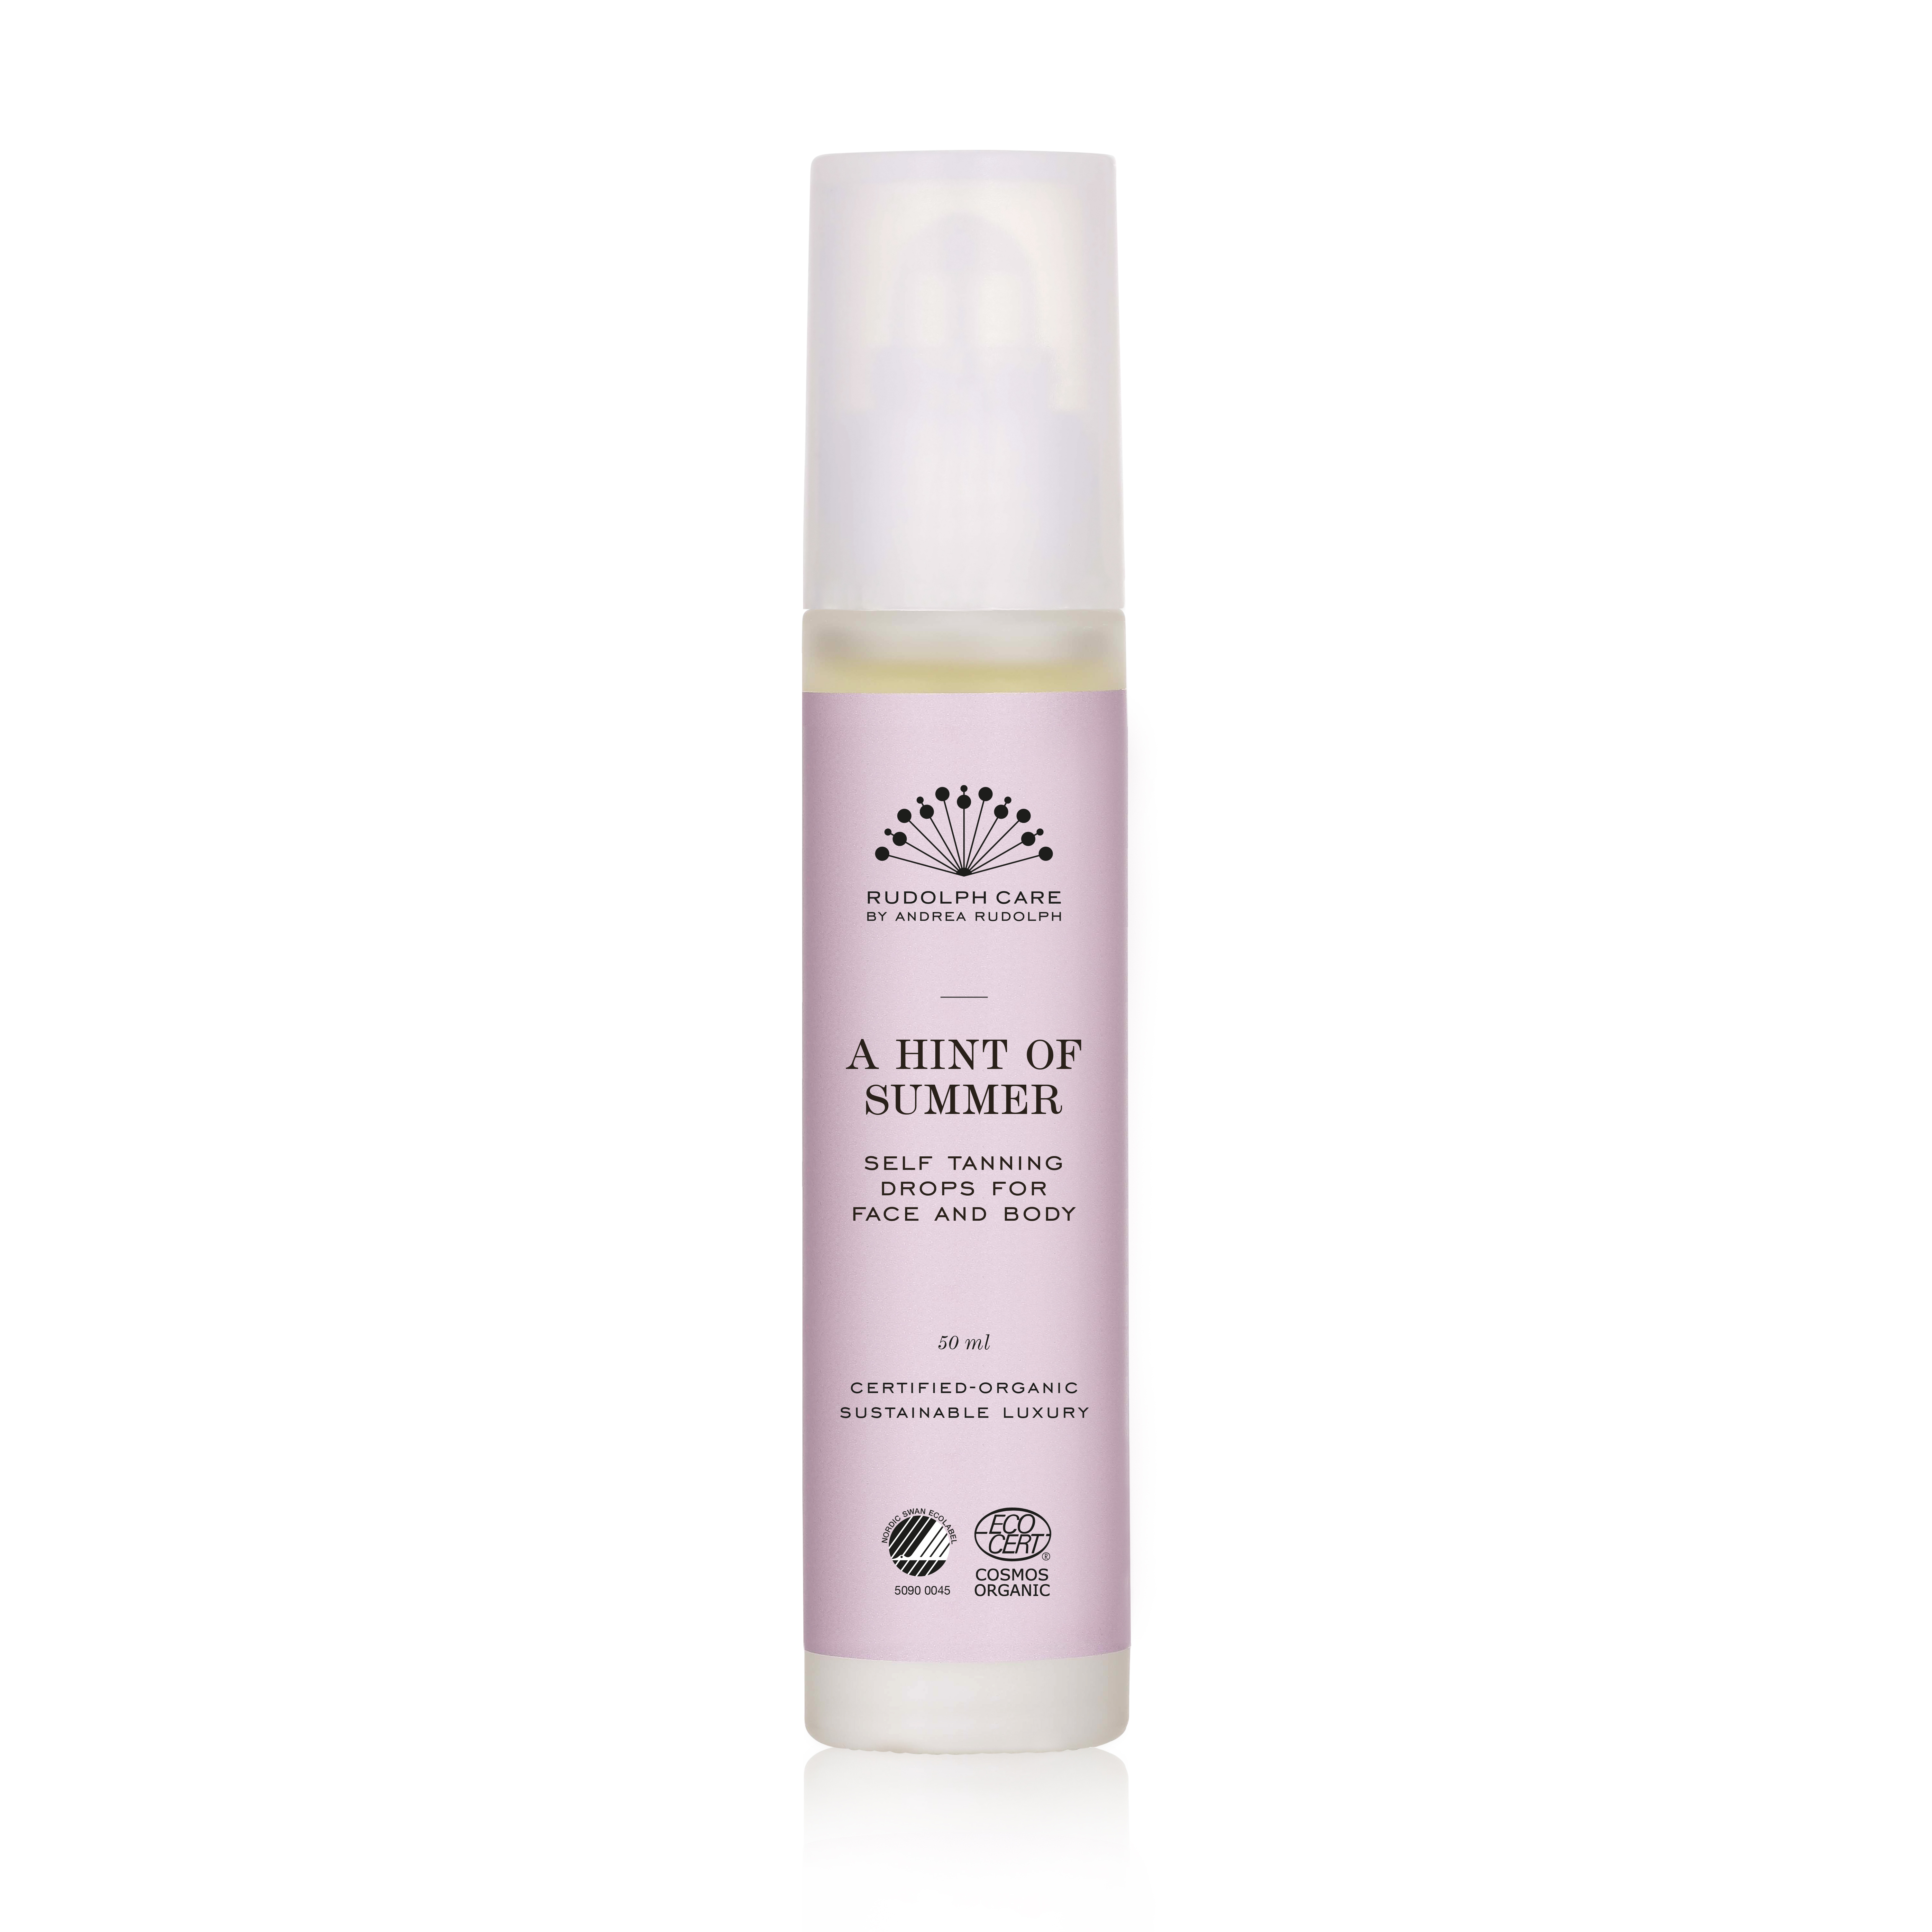 Rudolph Care A Hint Of Summer Self Tanning, 50 ml